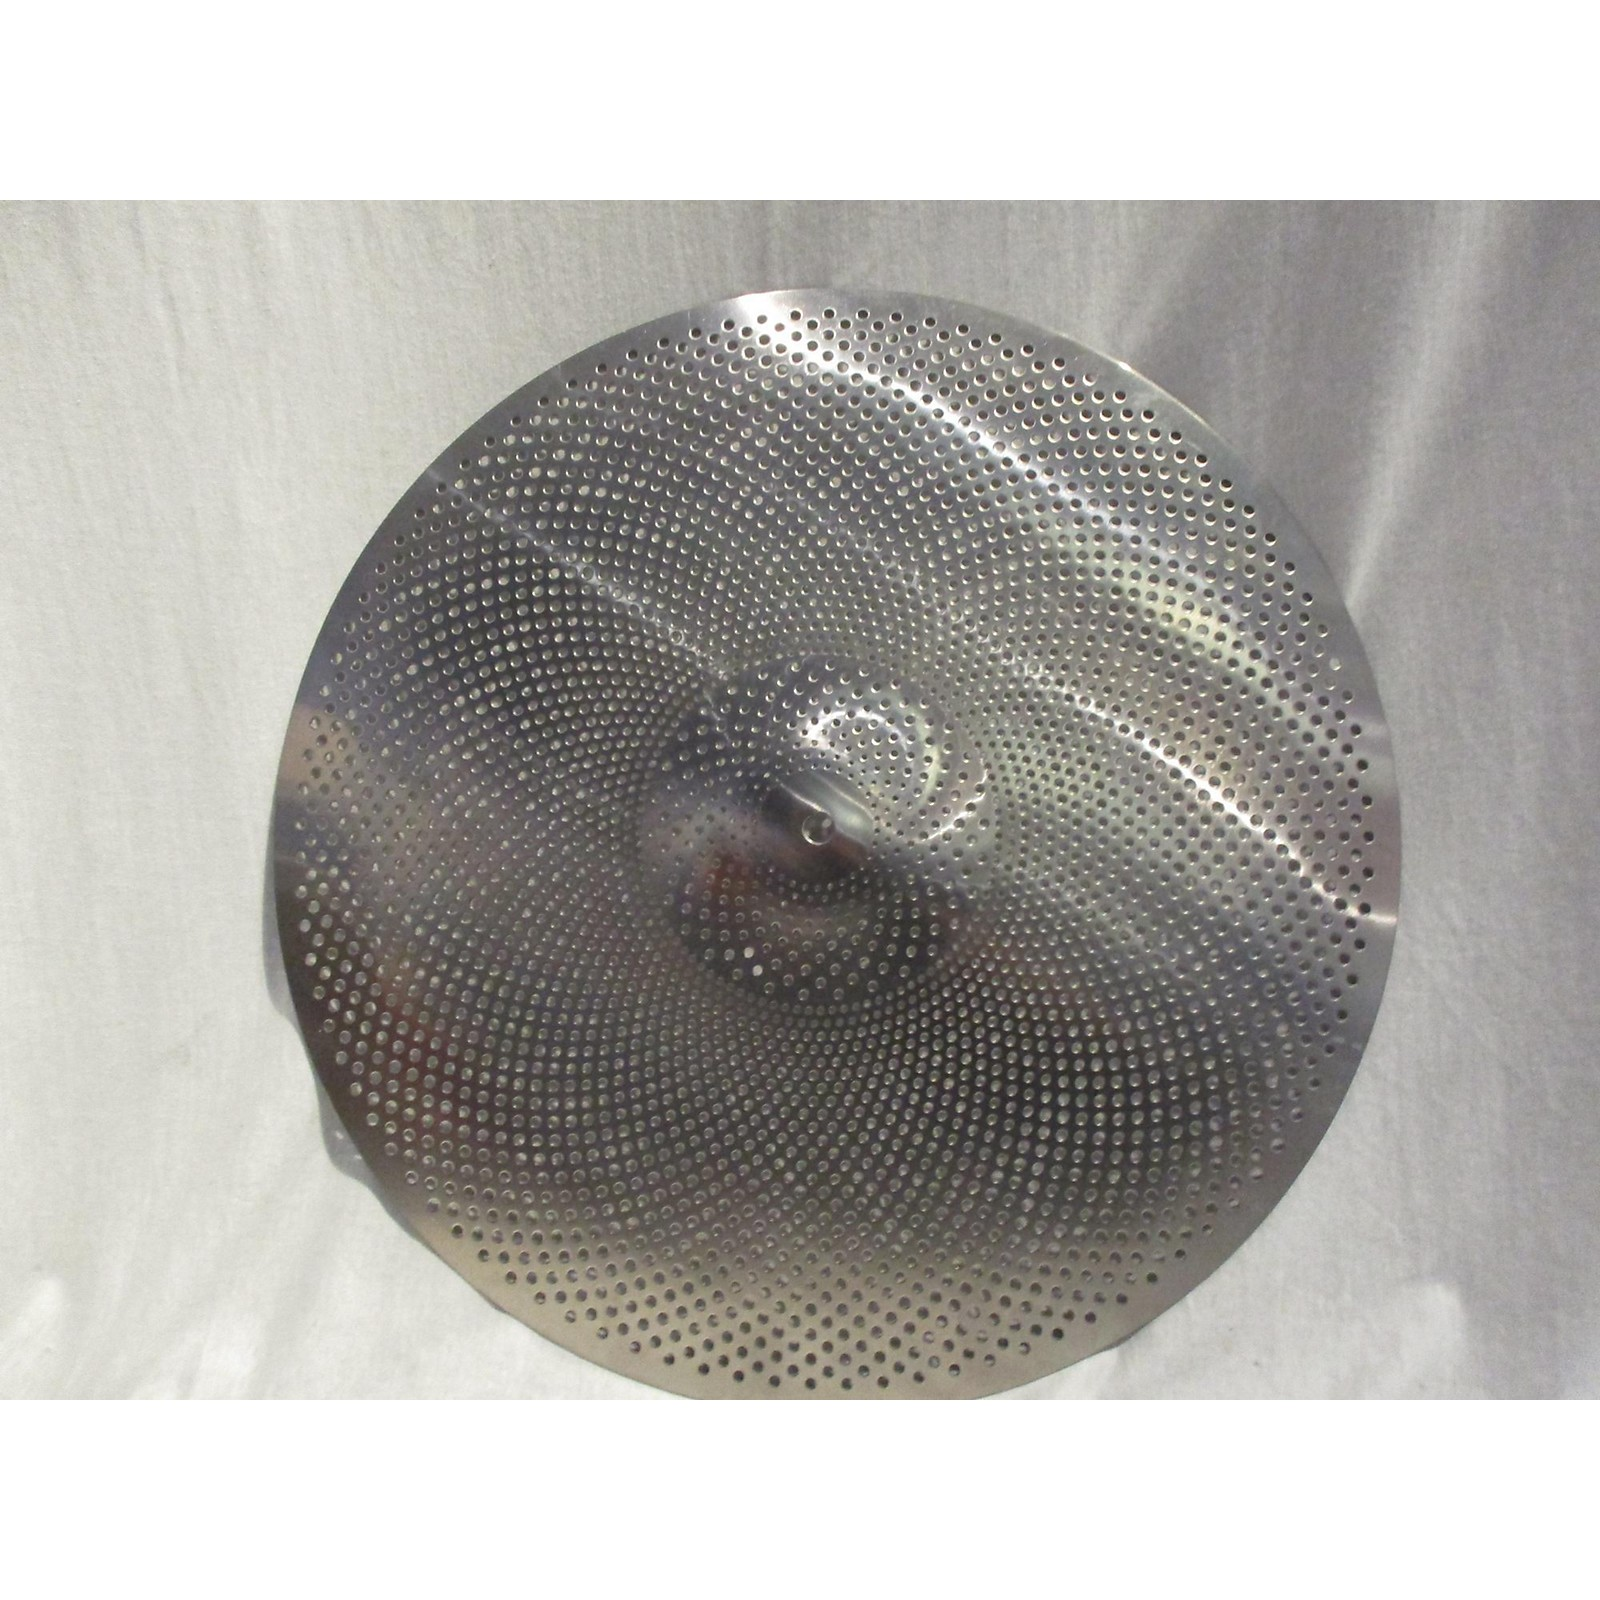 Miscellaneous 20in Low Volume Cymbal